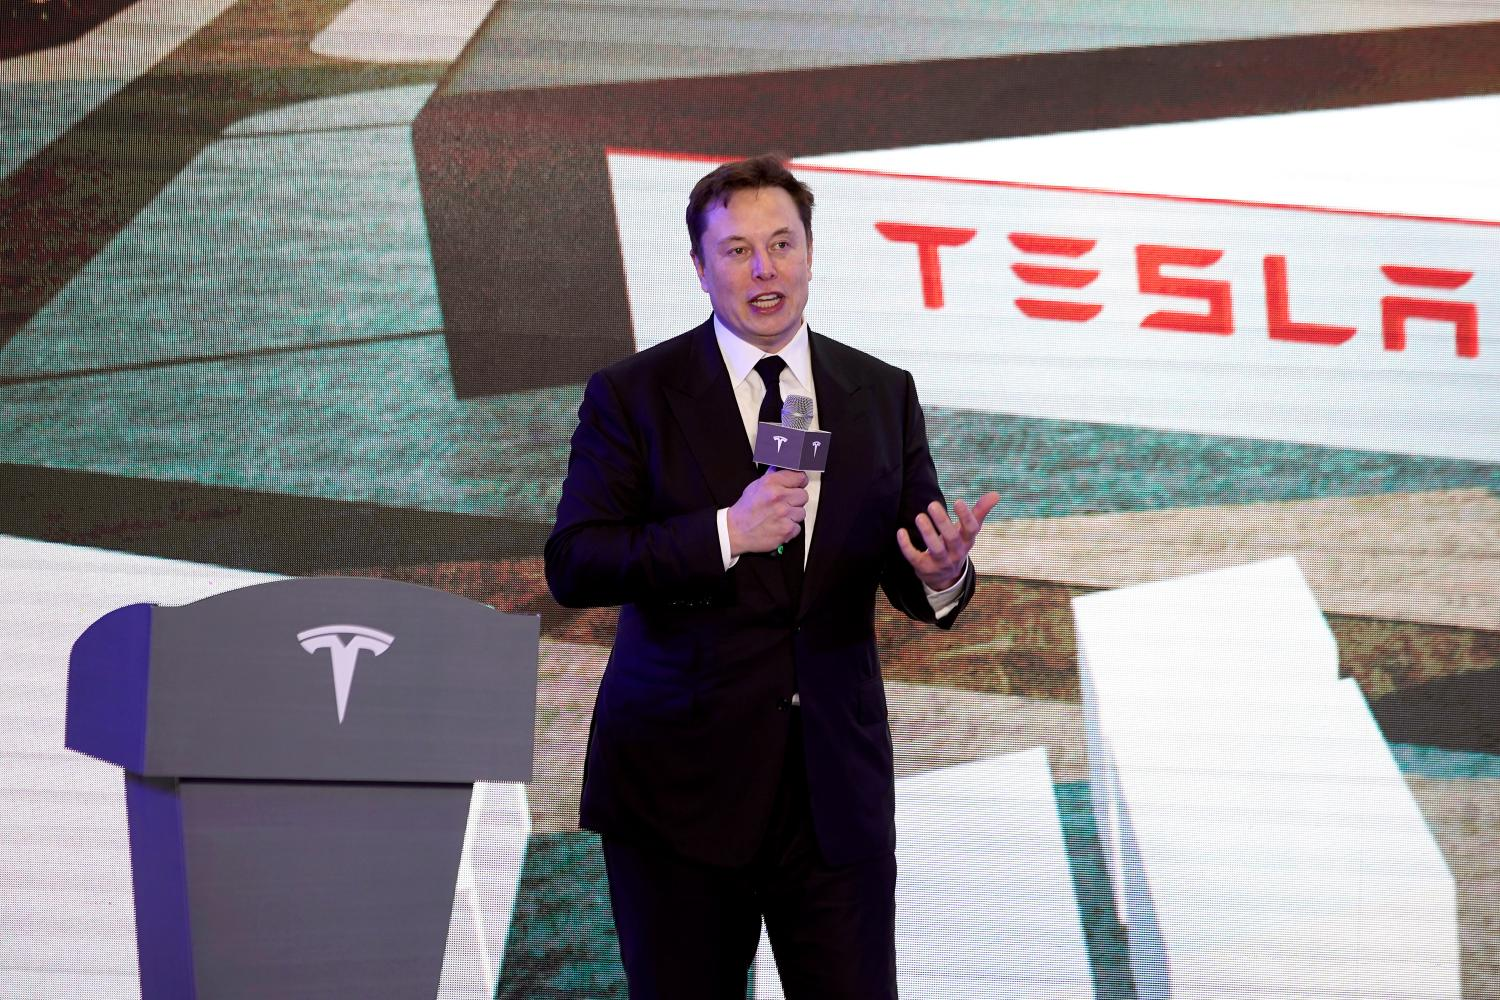 Musk is coming to India 'as promised'